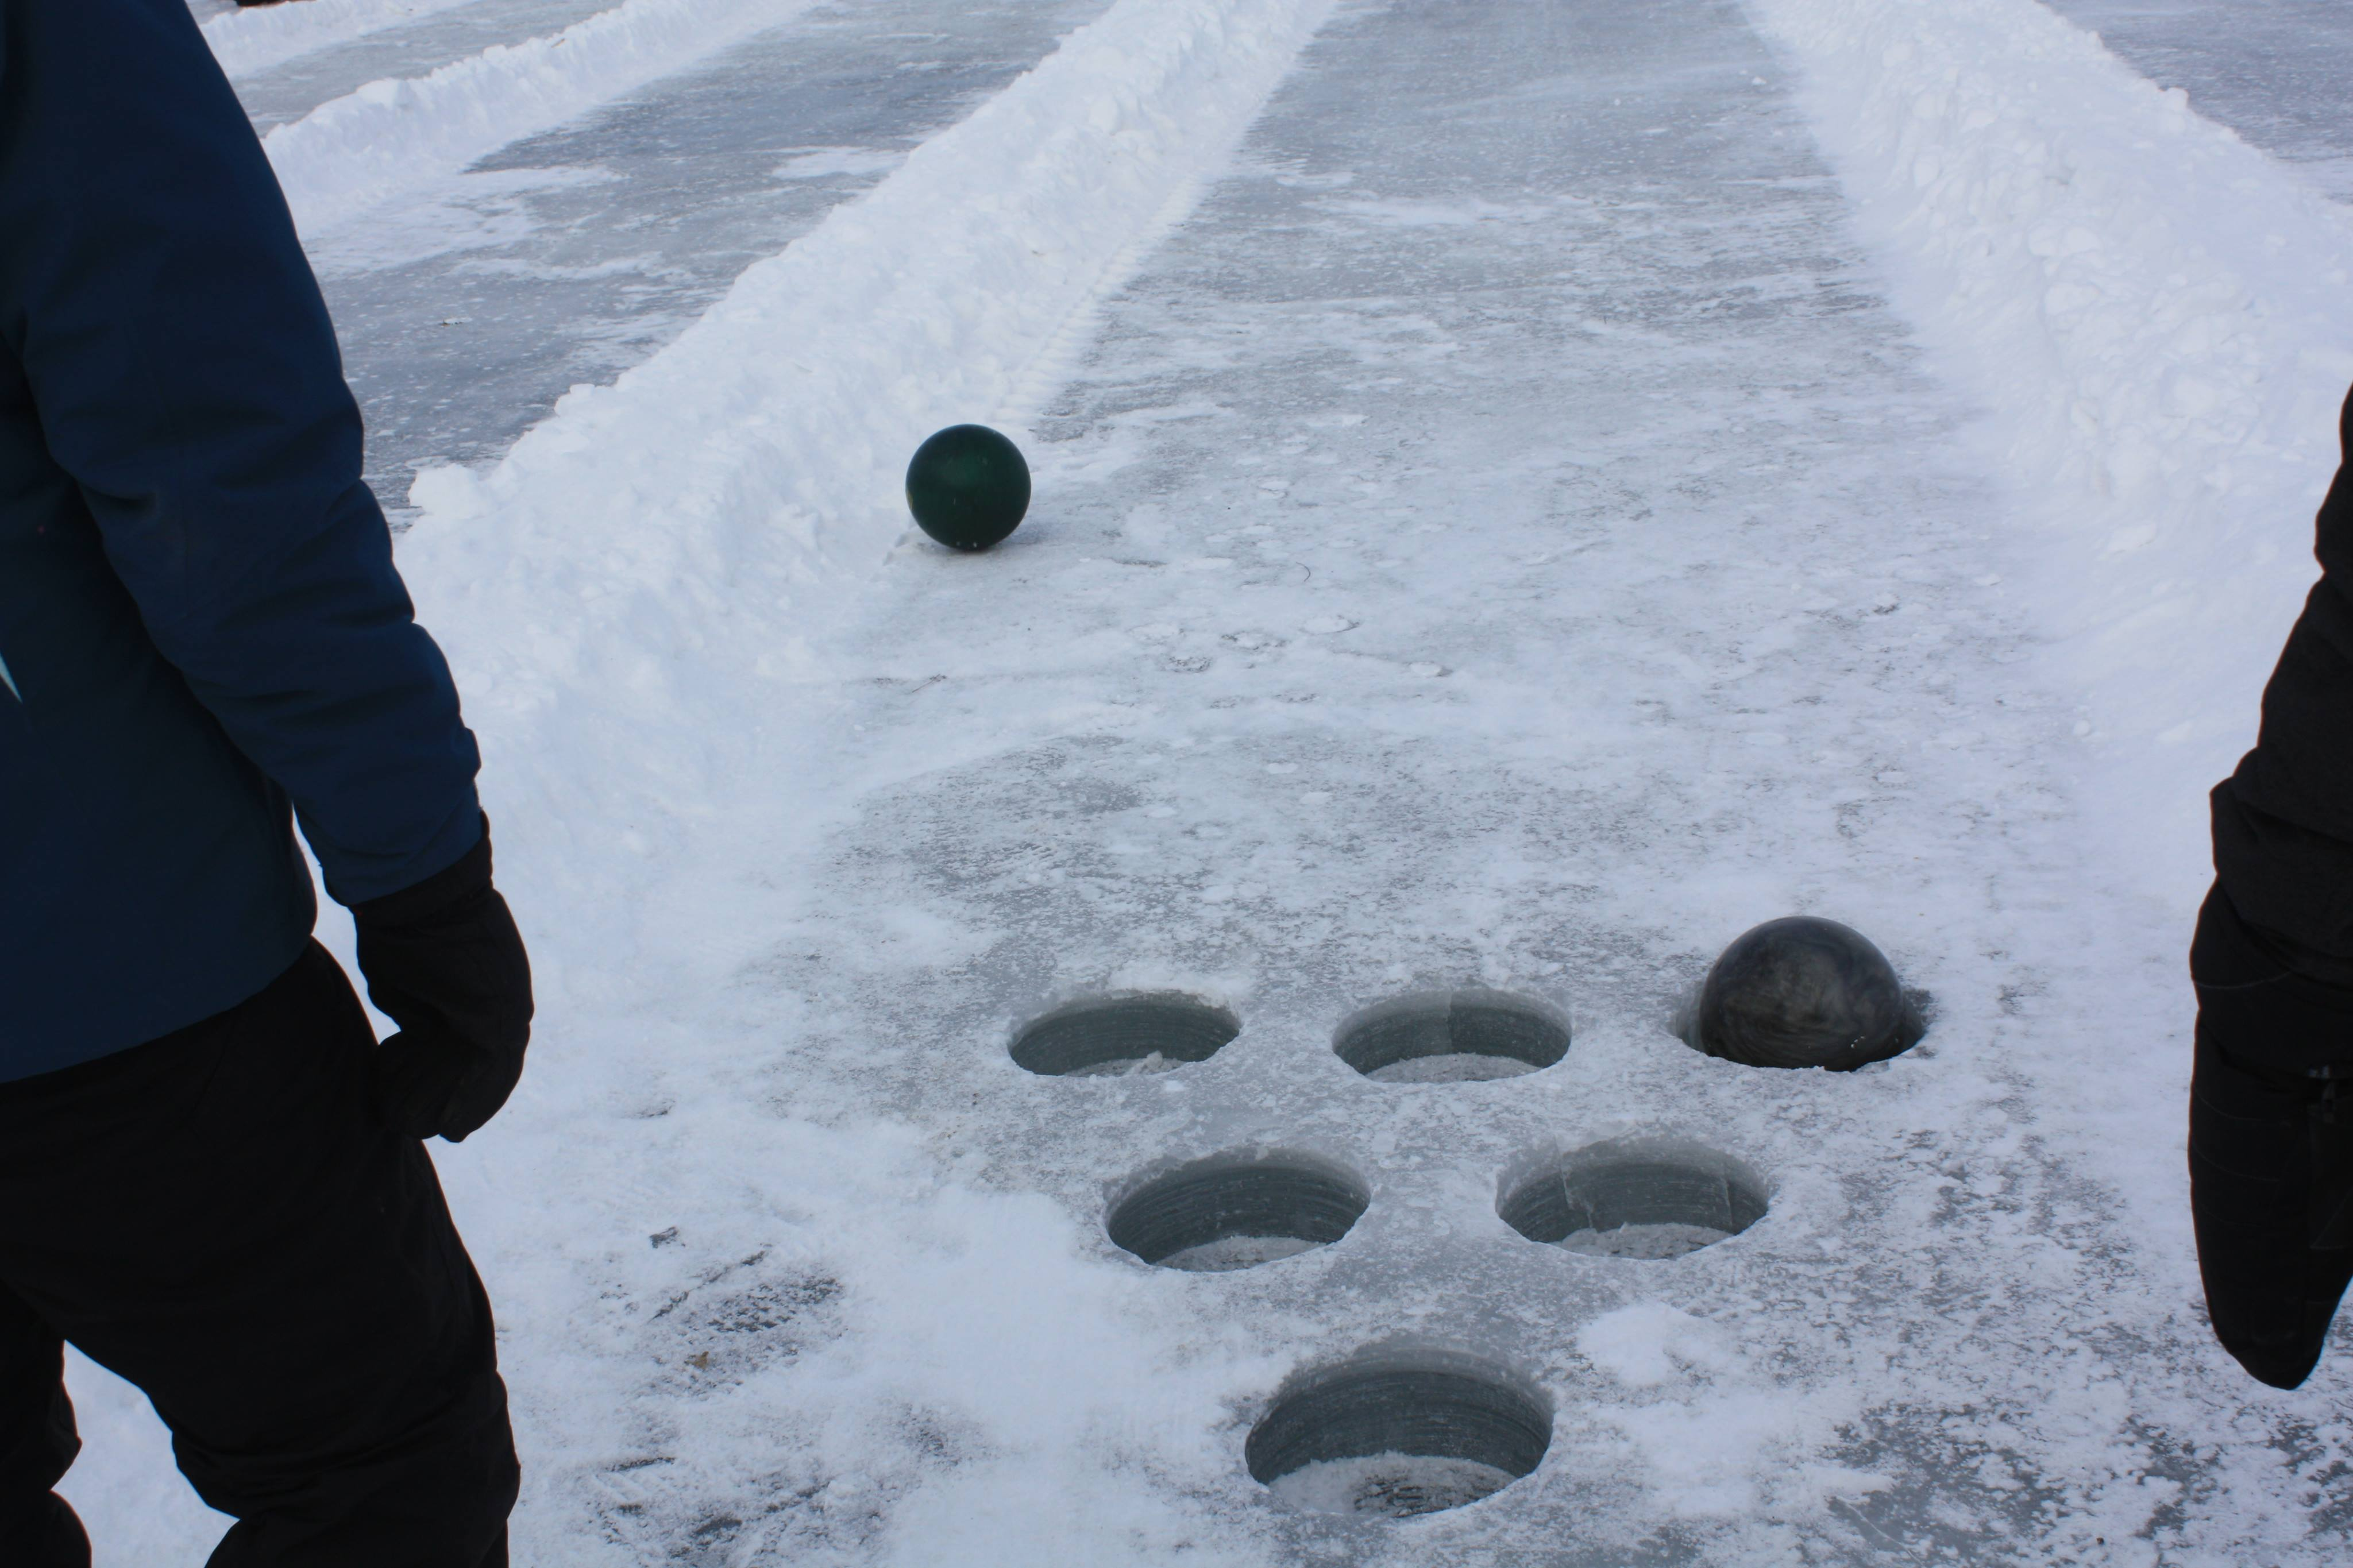 Ice Bowling in the #MNbump